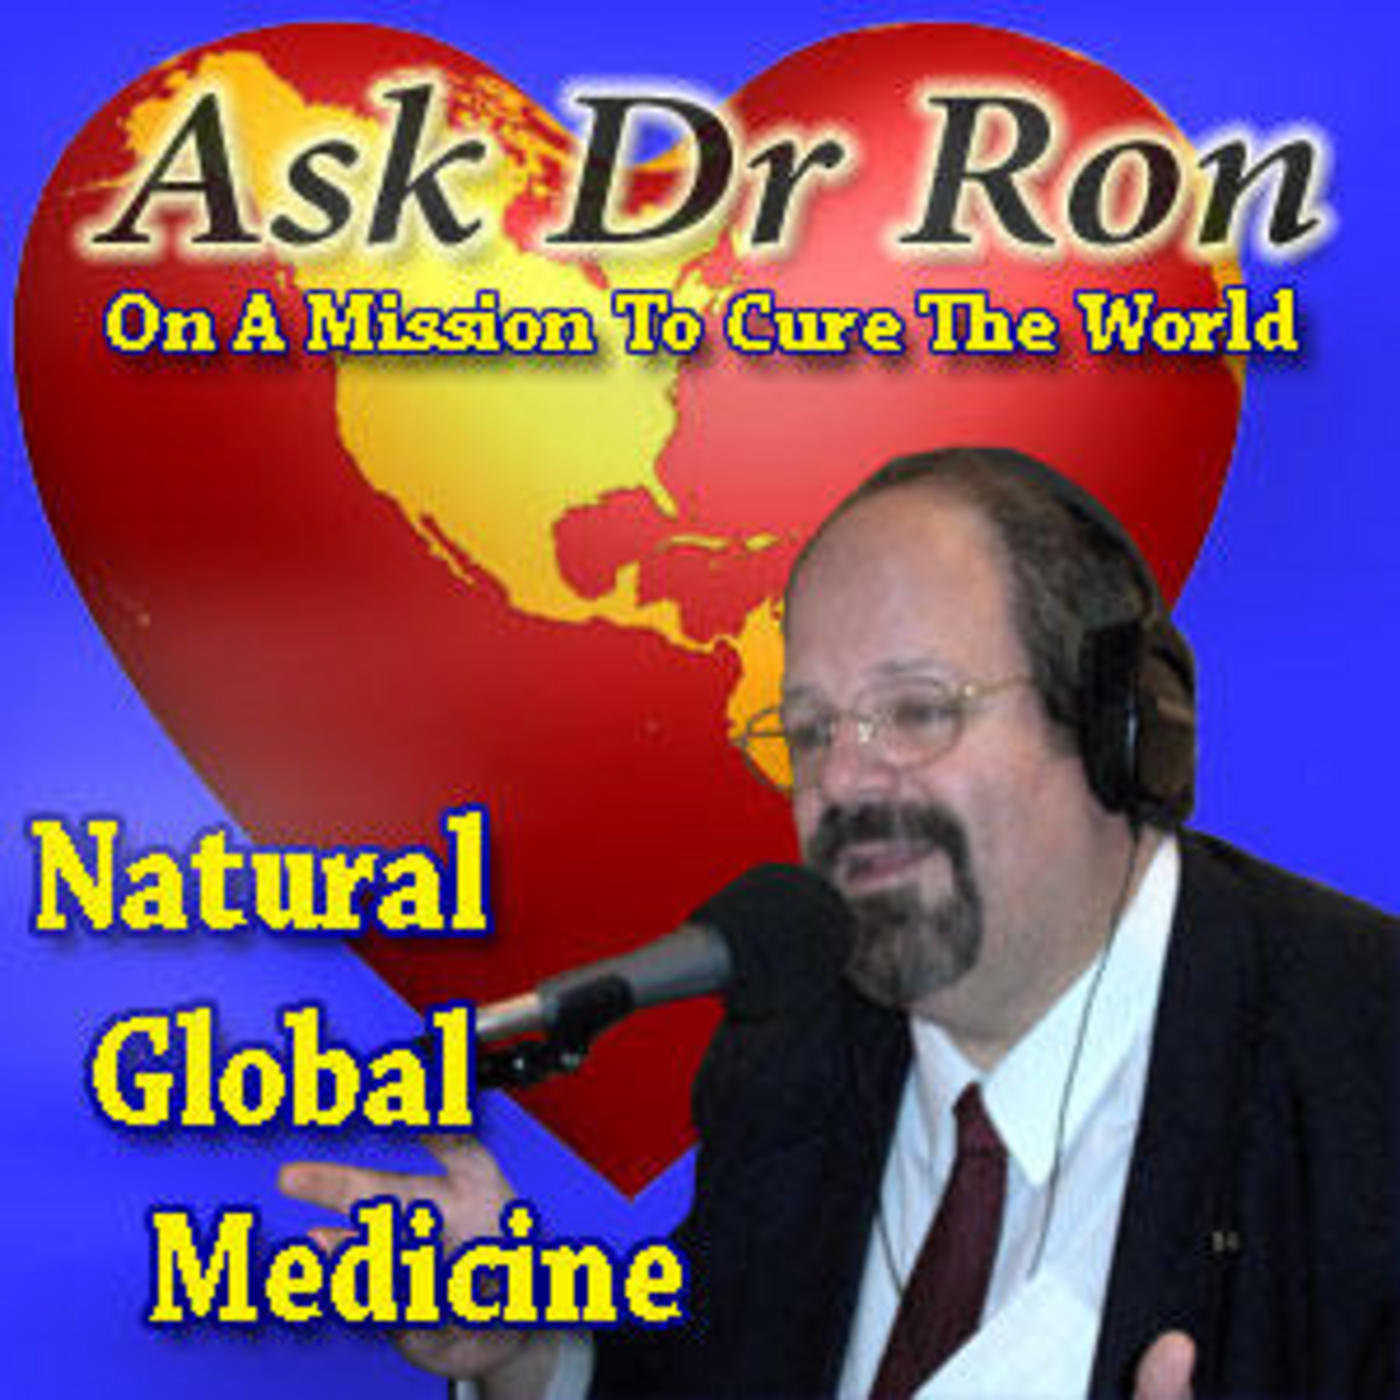 Intestinal Cleansing Overdone? An All Questions Ask Dr Ron Radio Show